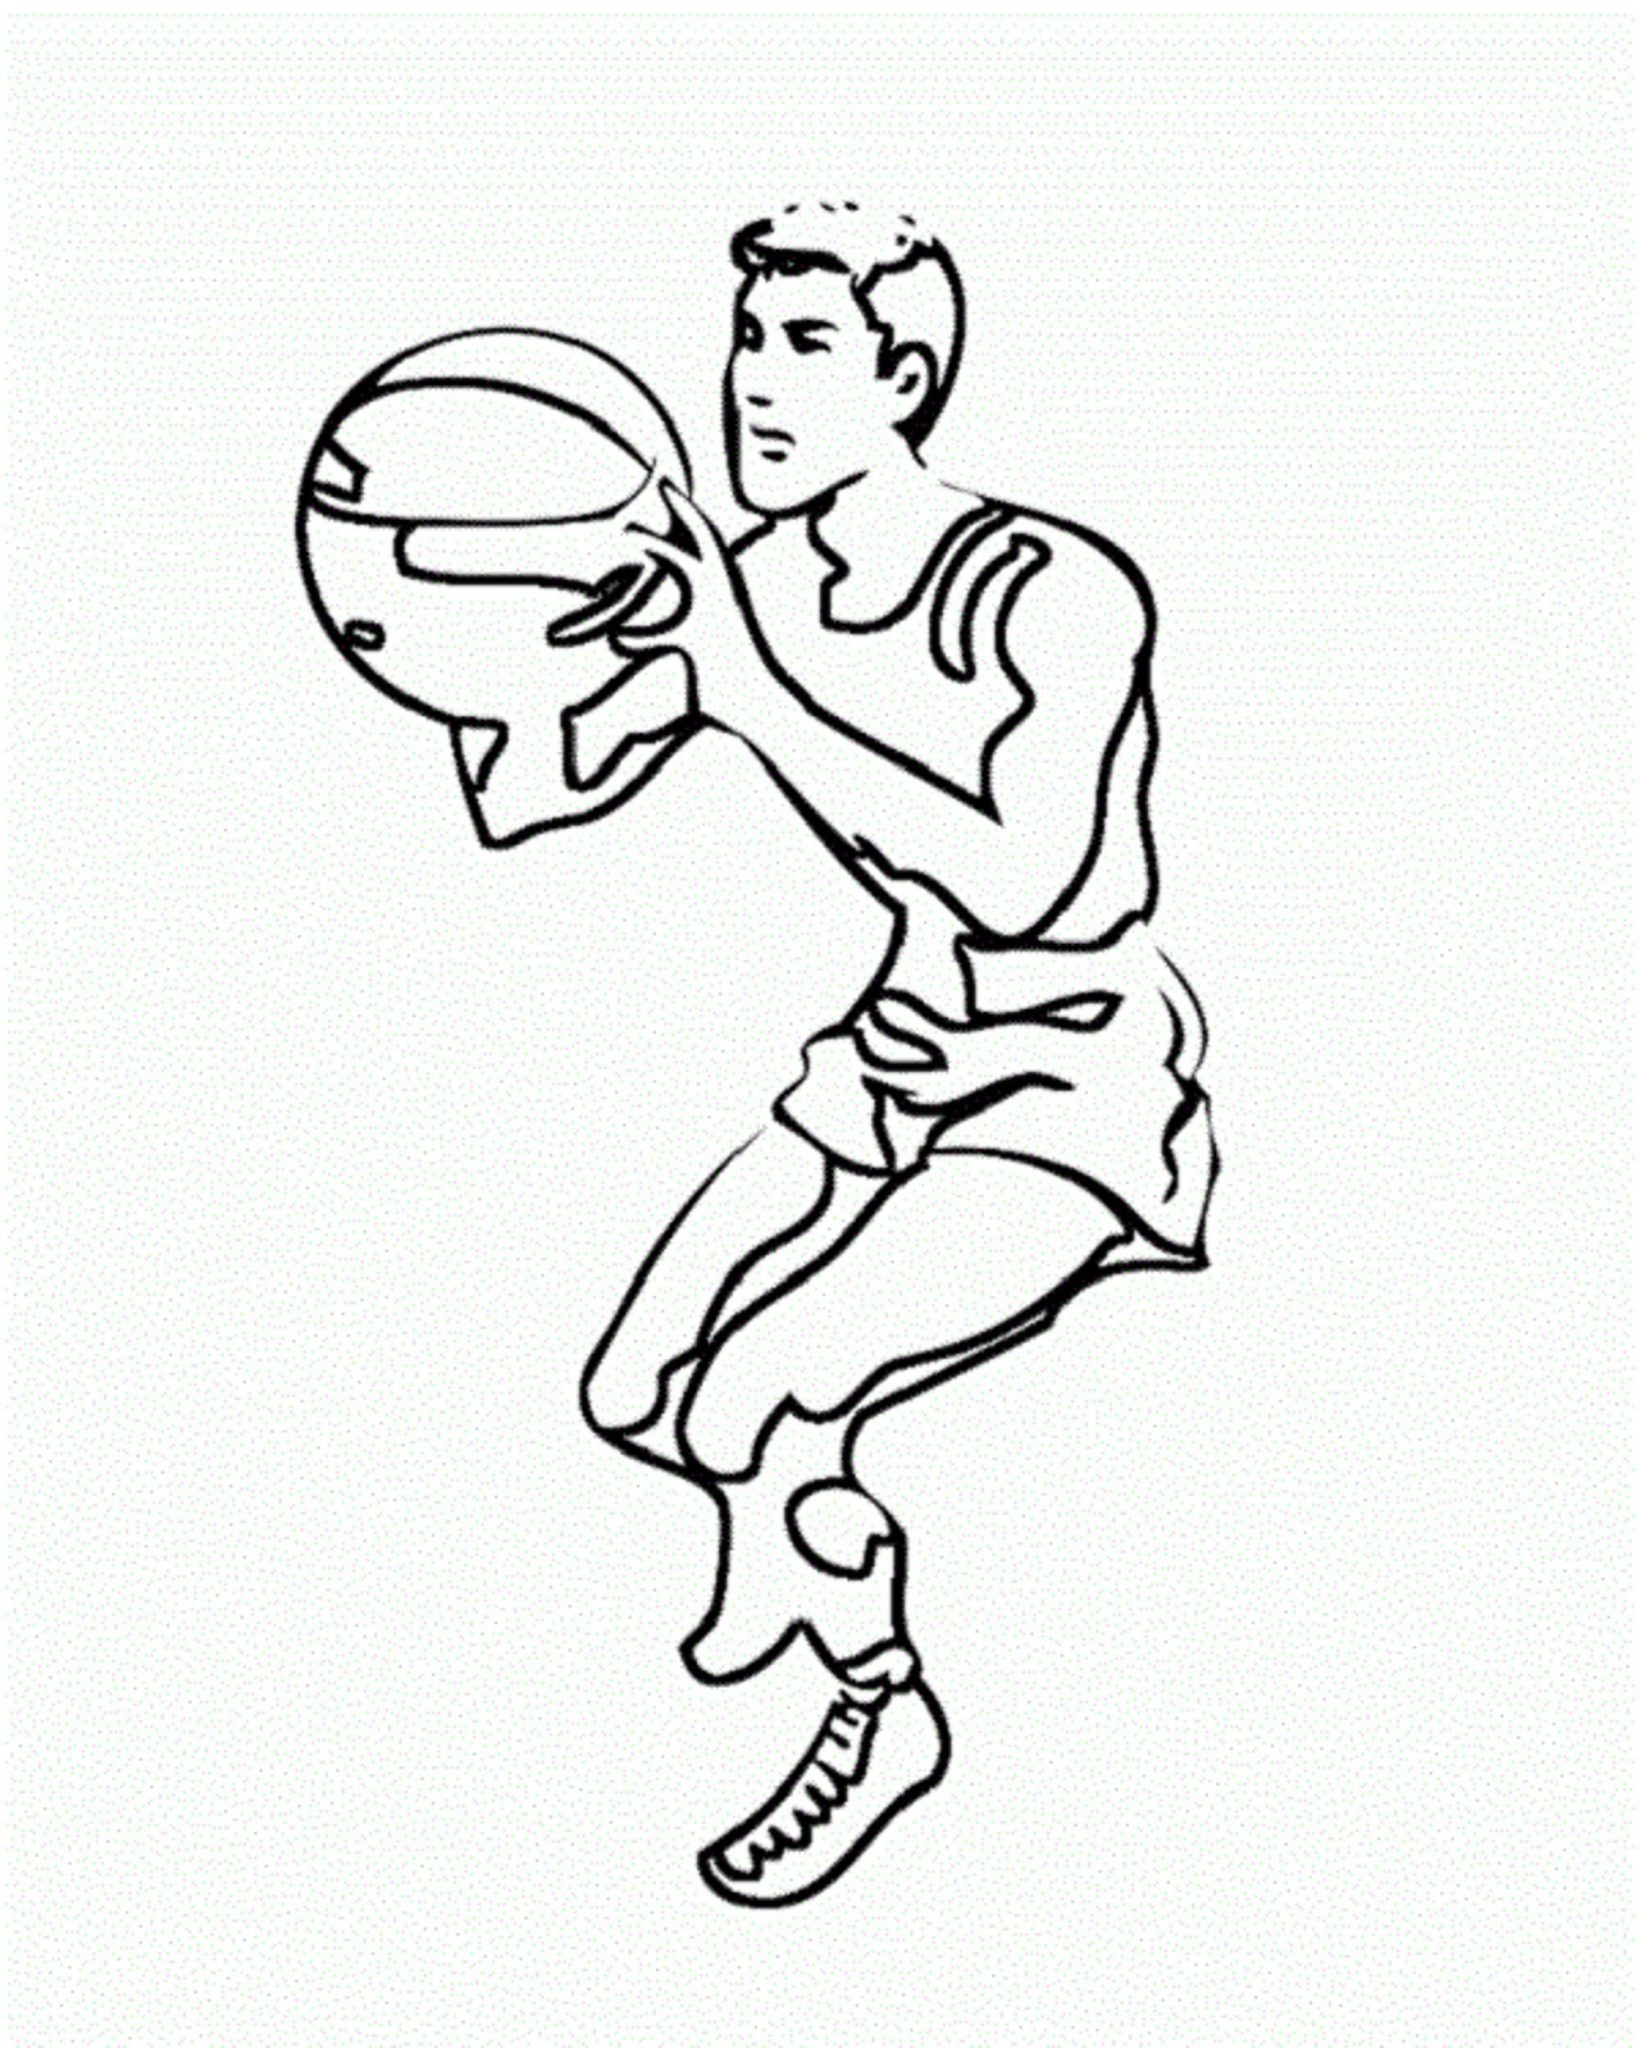 Print & Download - Interesting Basketball Coloring Pages